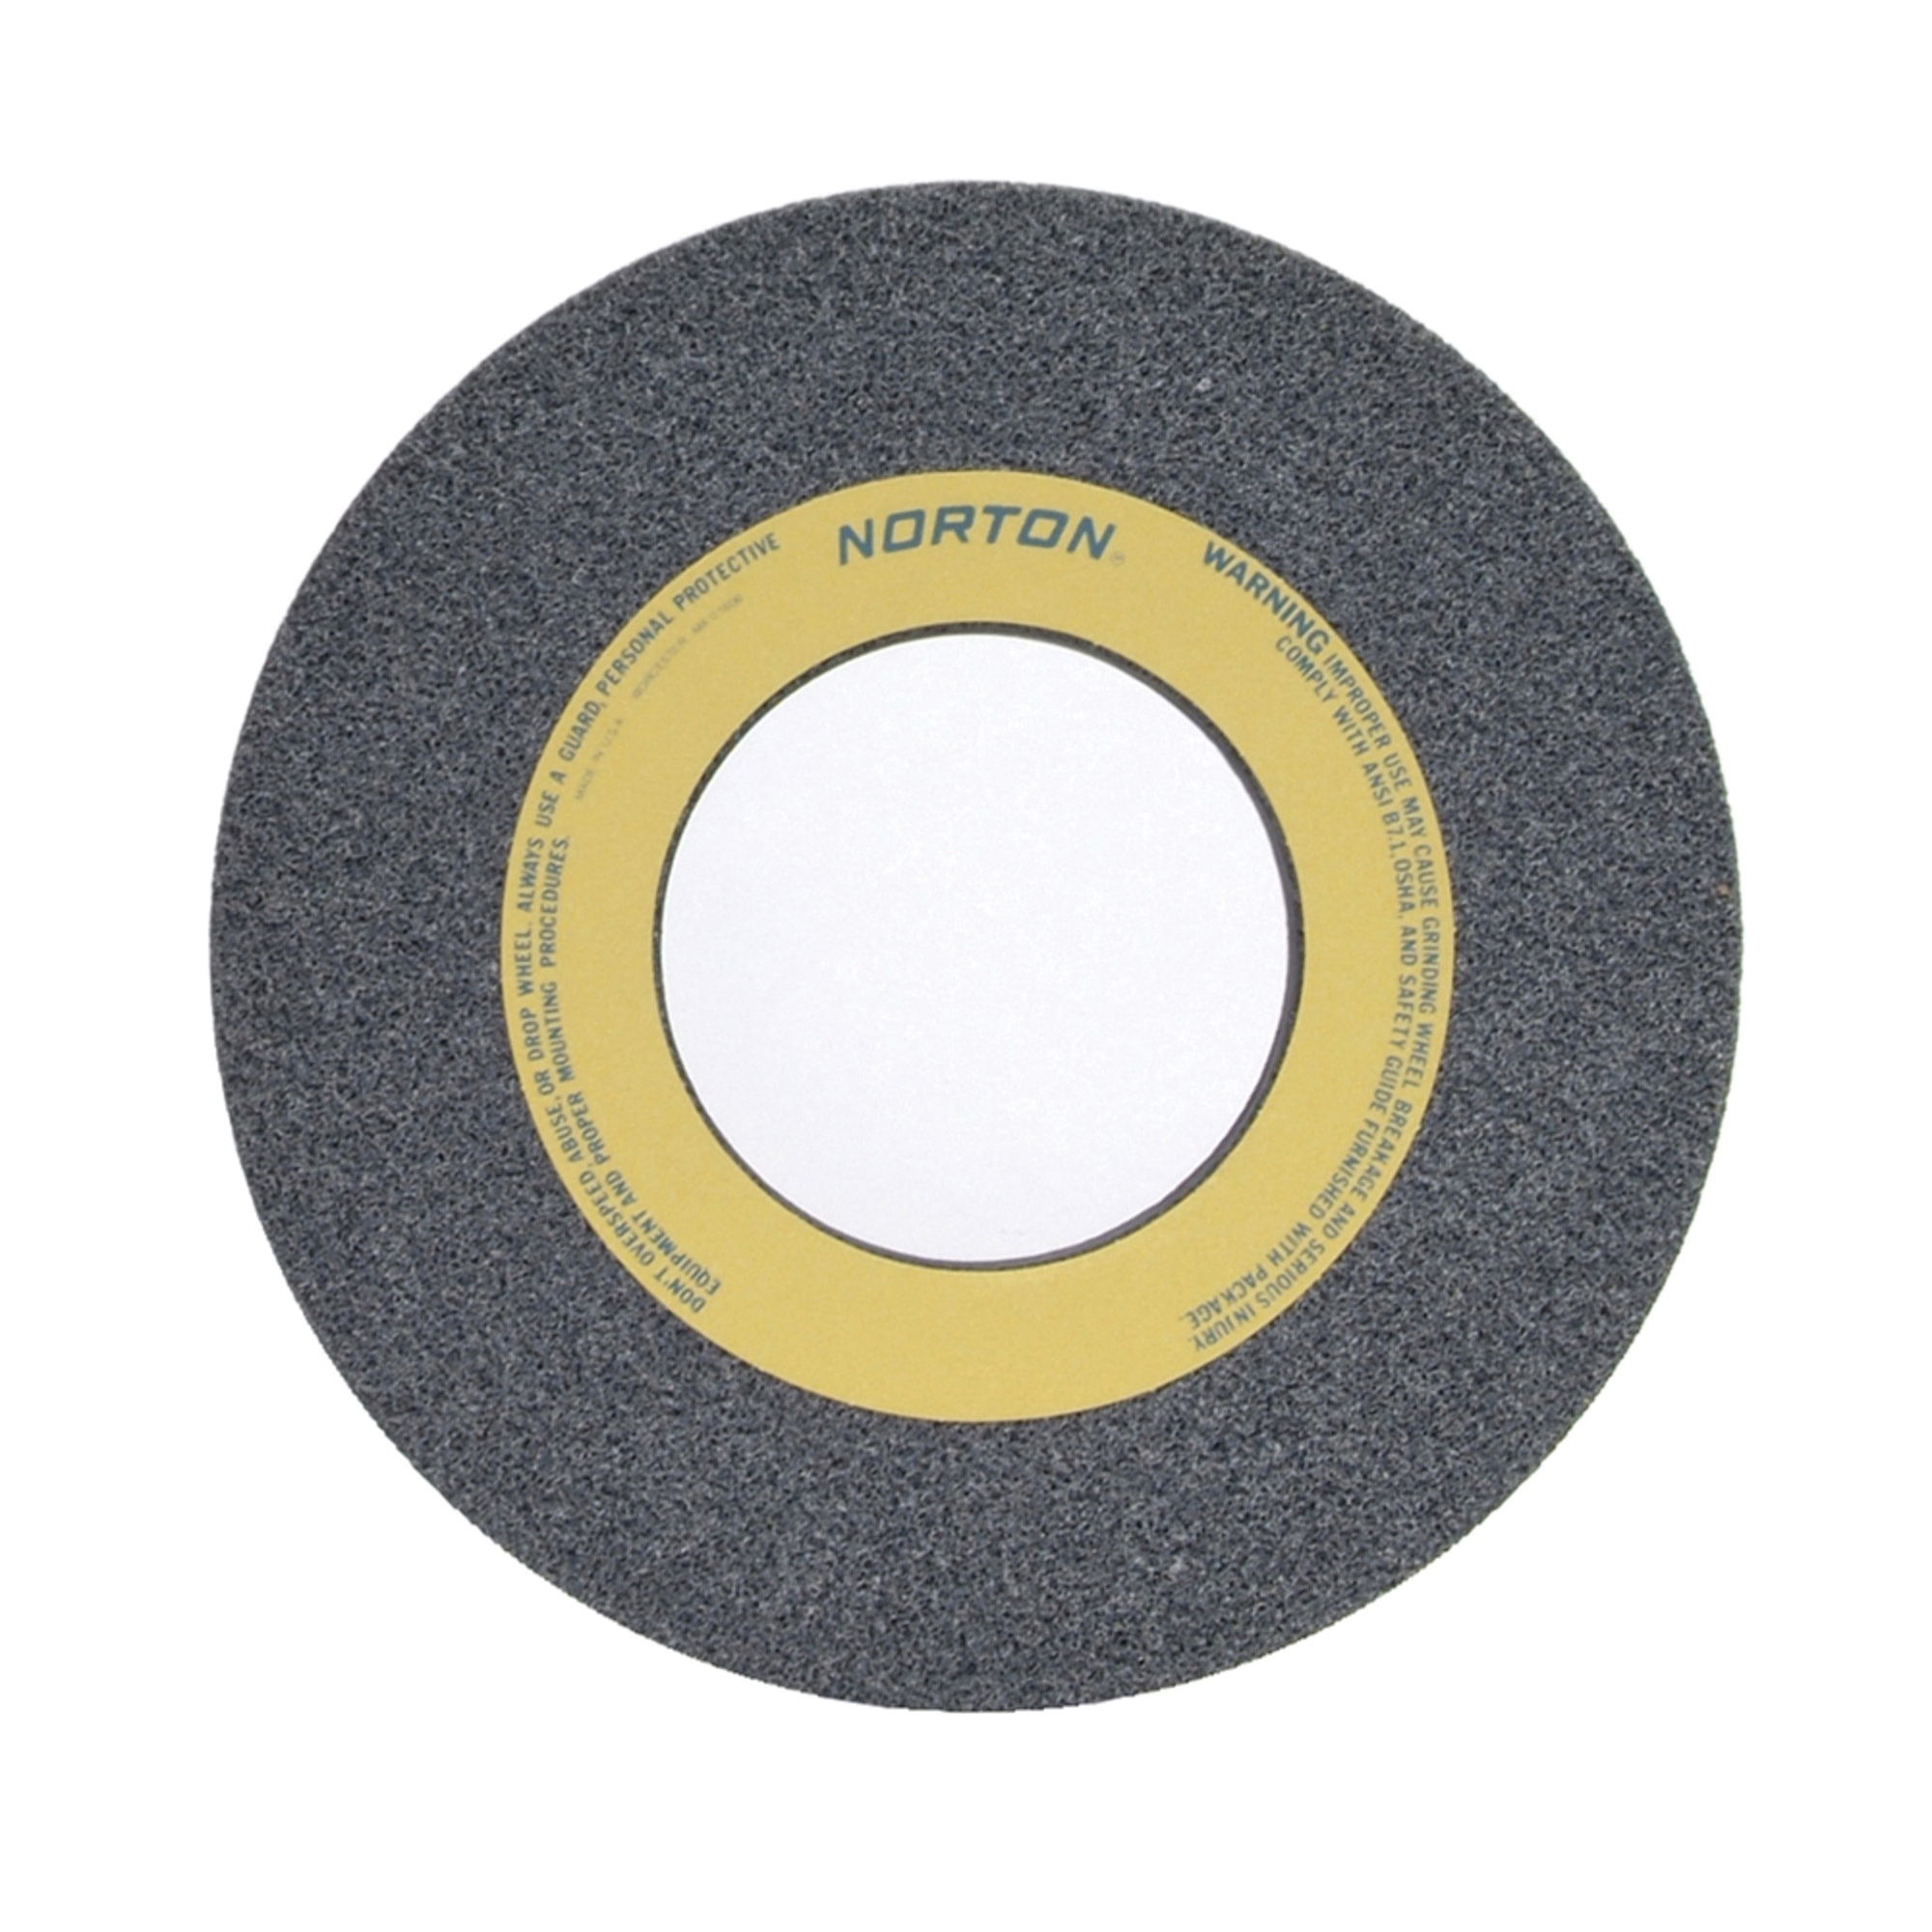 Norton® 66253364508 32A Straight Toolroom Wheel, 14 in Dia x 2 in THK, 5 in Center Hole, 46 Grit, Aluminum Oxide Abrasive